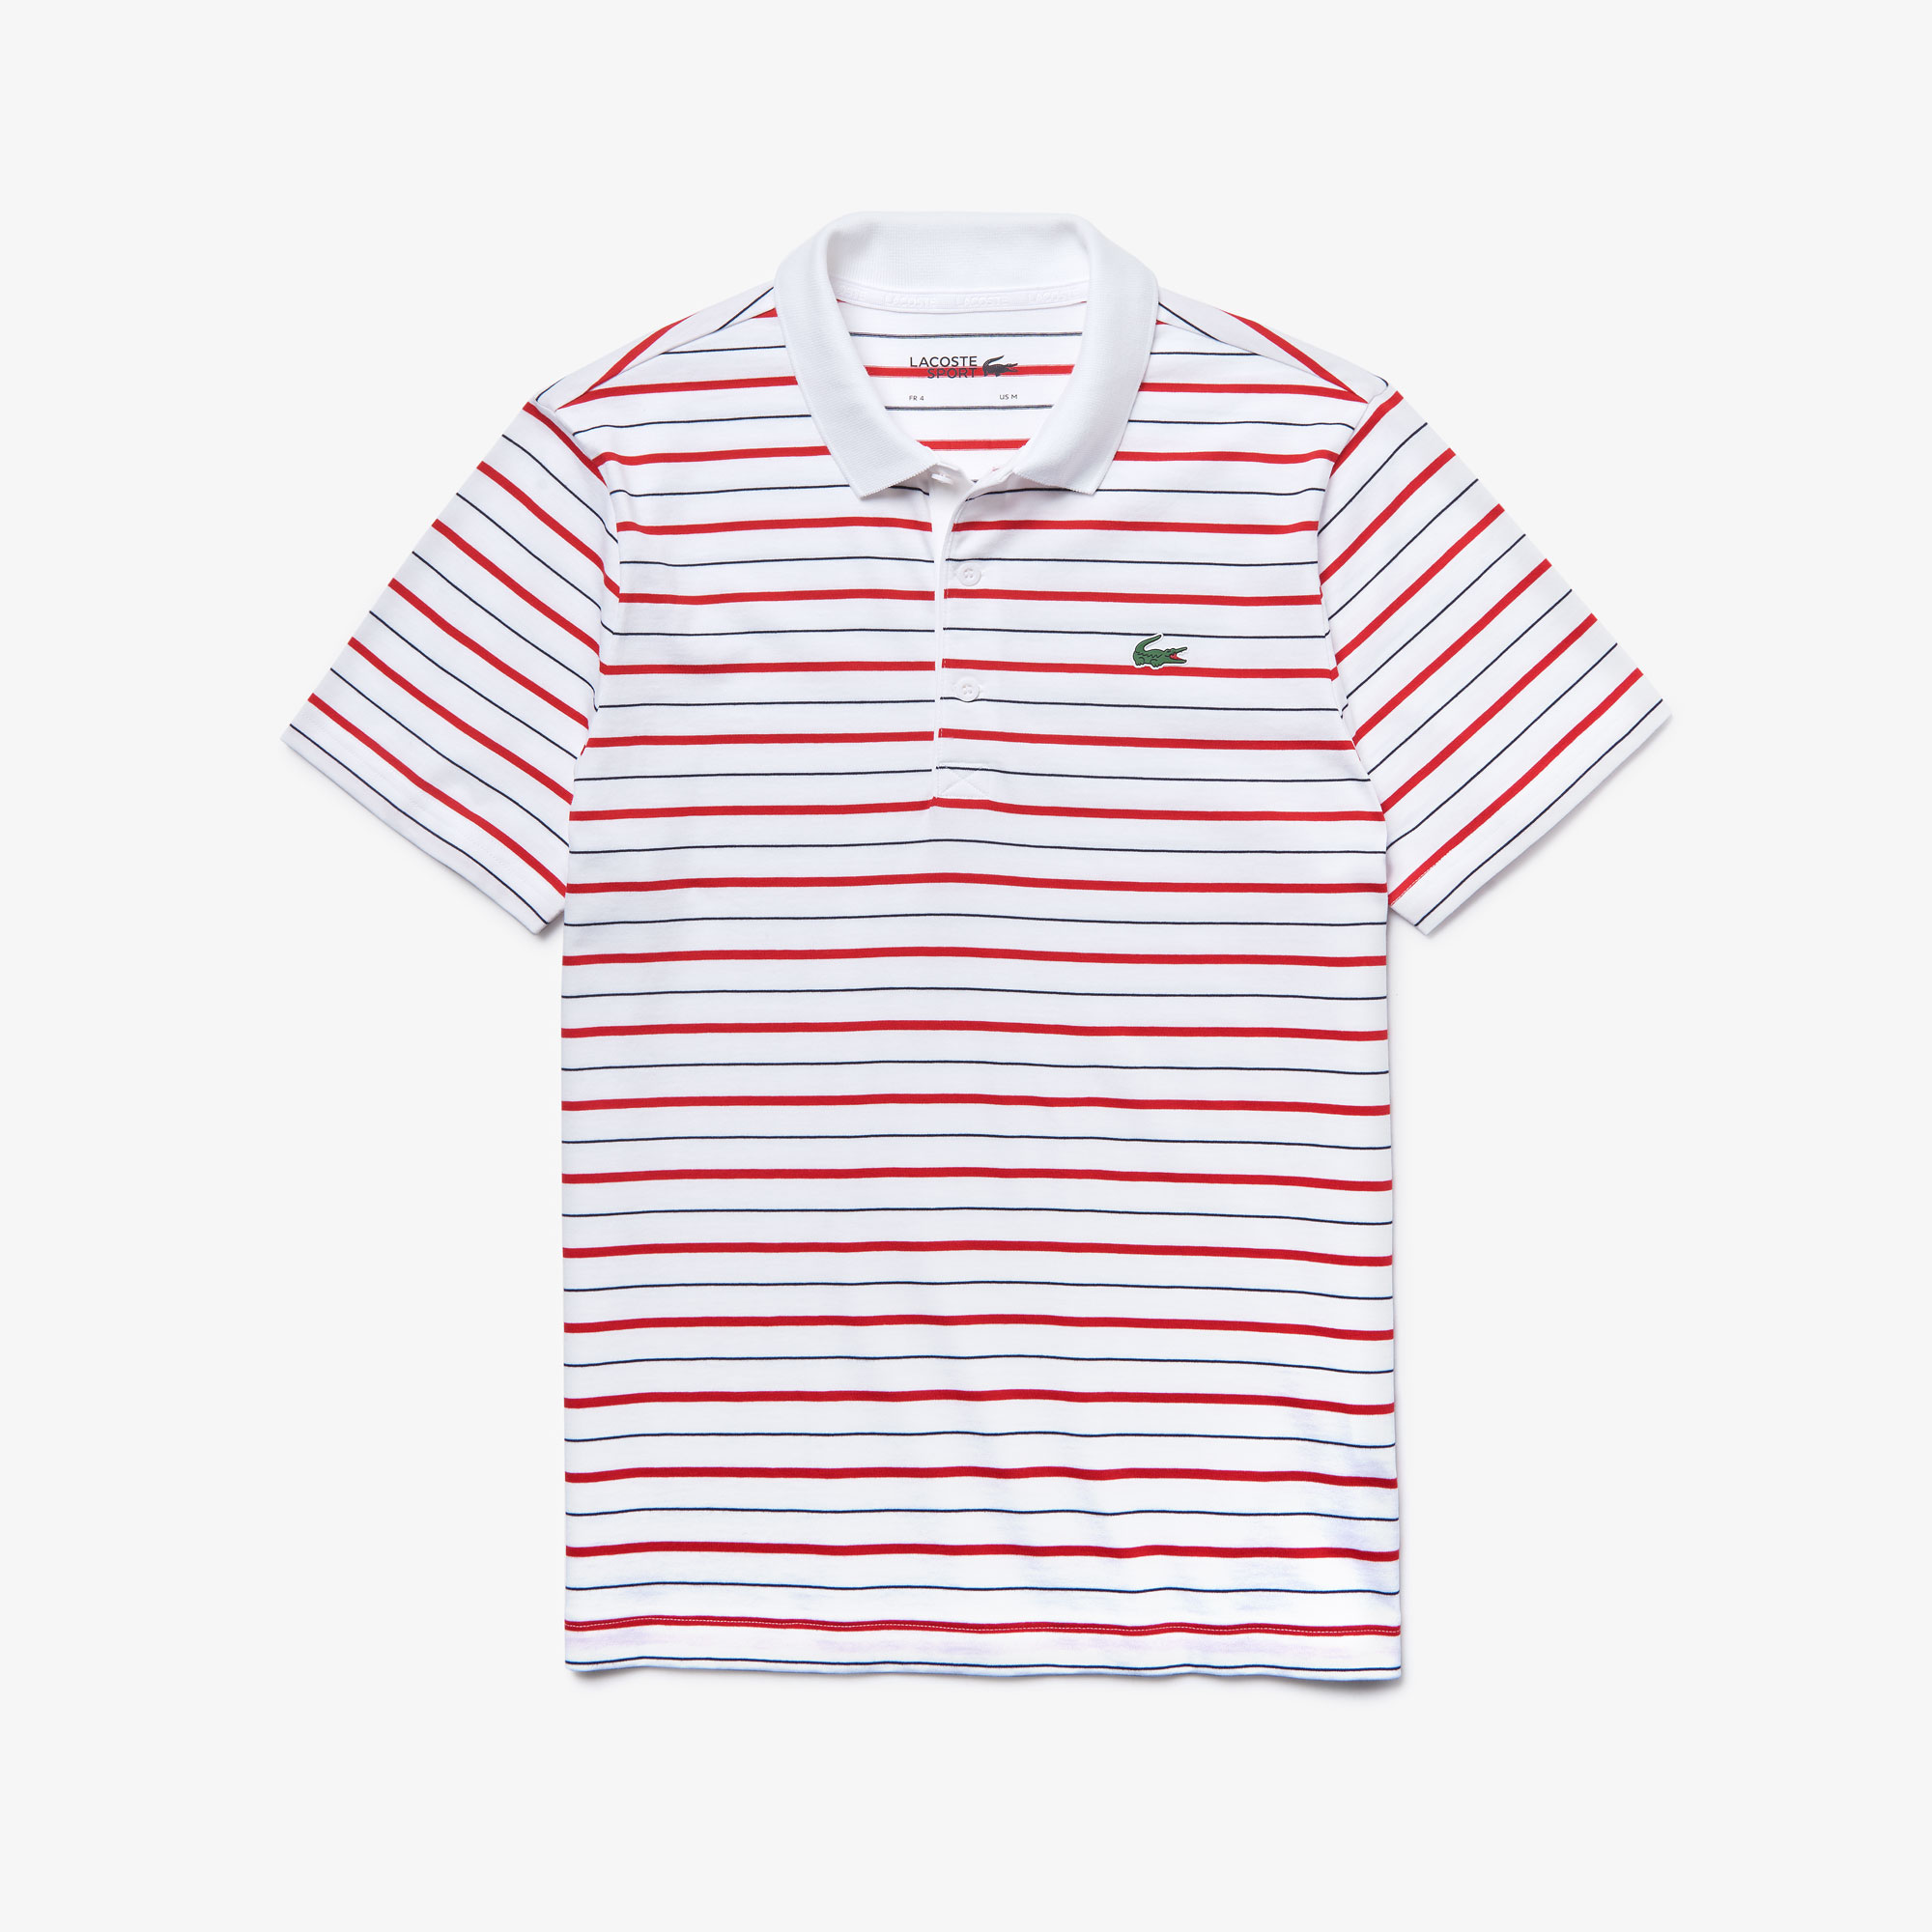 Men's Lacoste SPORT L.12.12 Striped Technical Jersey Polo Shirt